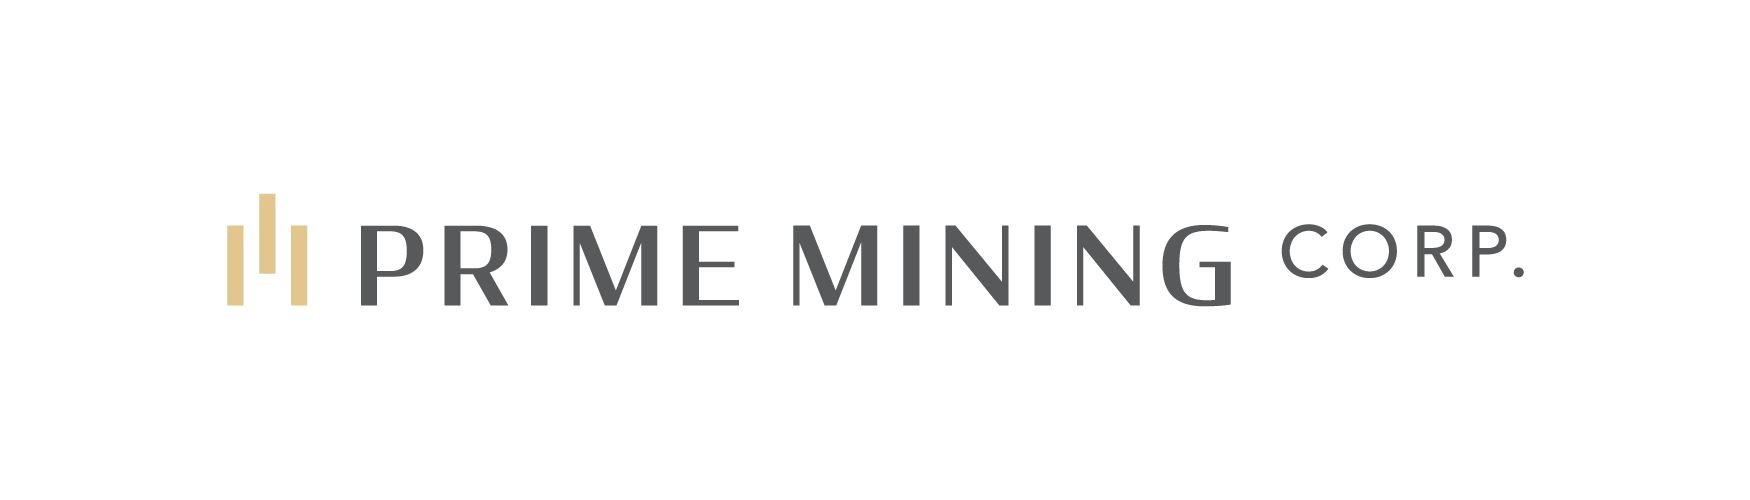 Prime Mining Comments on Recent Promotional Activity